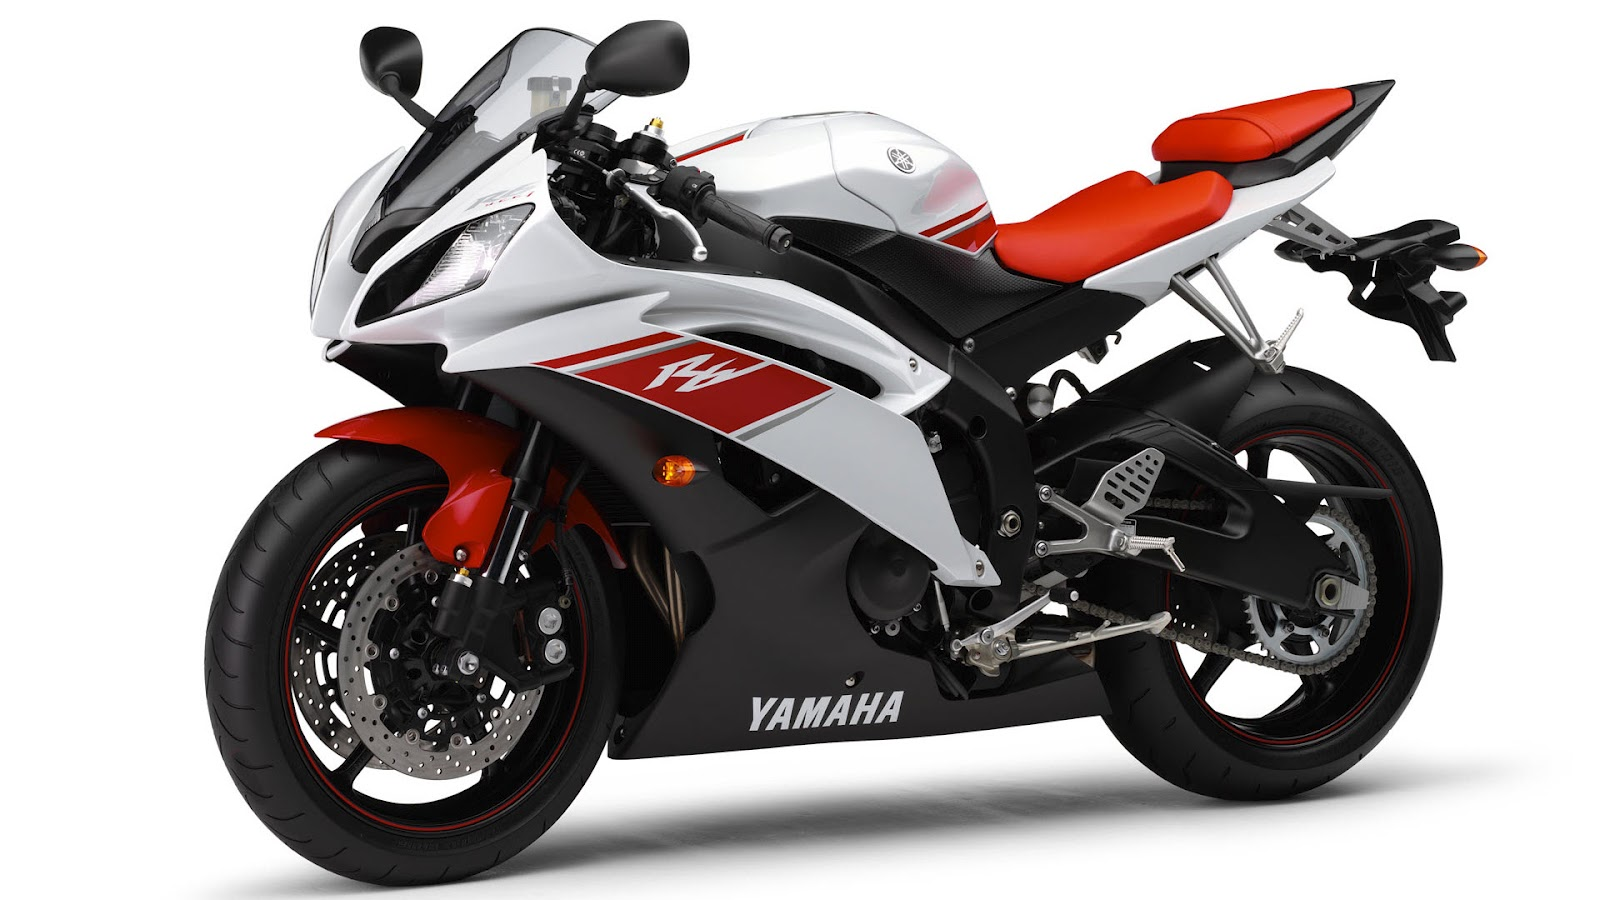 hot,spicy & stuuning hd wallpapers: yamaha bikes wallpapers